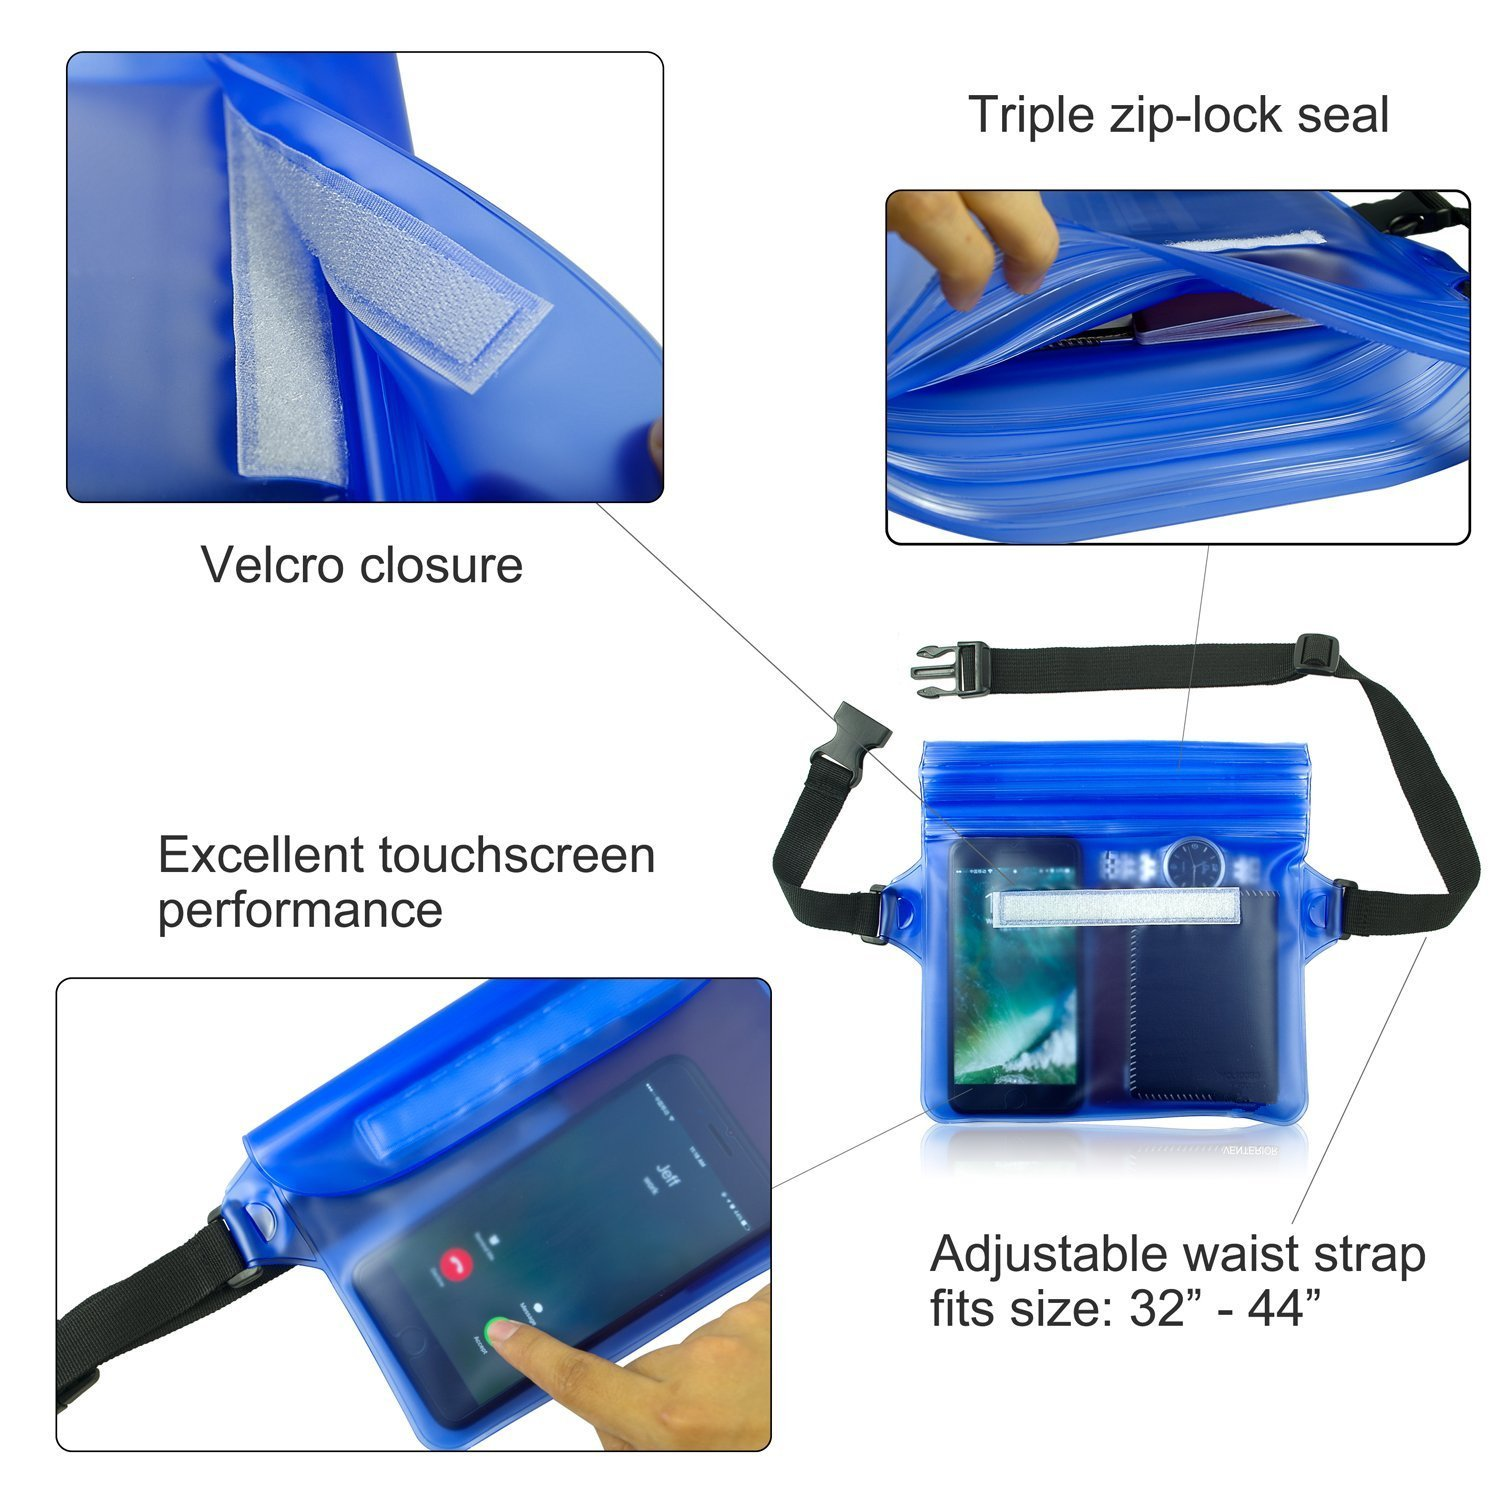 Firstbuy Waterproof Pouch with Waist Strap (2 Pack) Best Way to Keep Your Phone and Valuables Safe and Dry Perfect for Boating Swimming Snorkeling Kayaking Beach Pool Water Parks (Black + Blue)